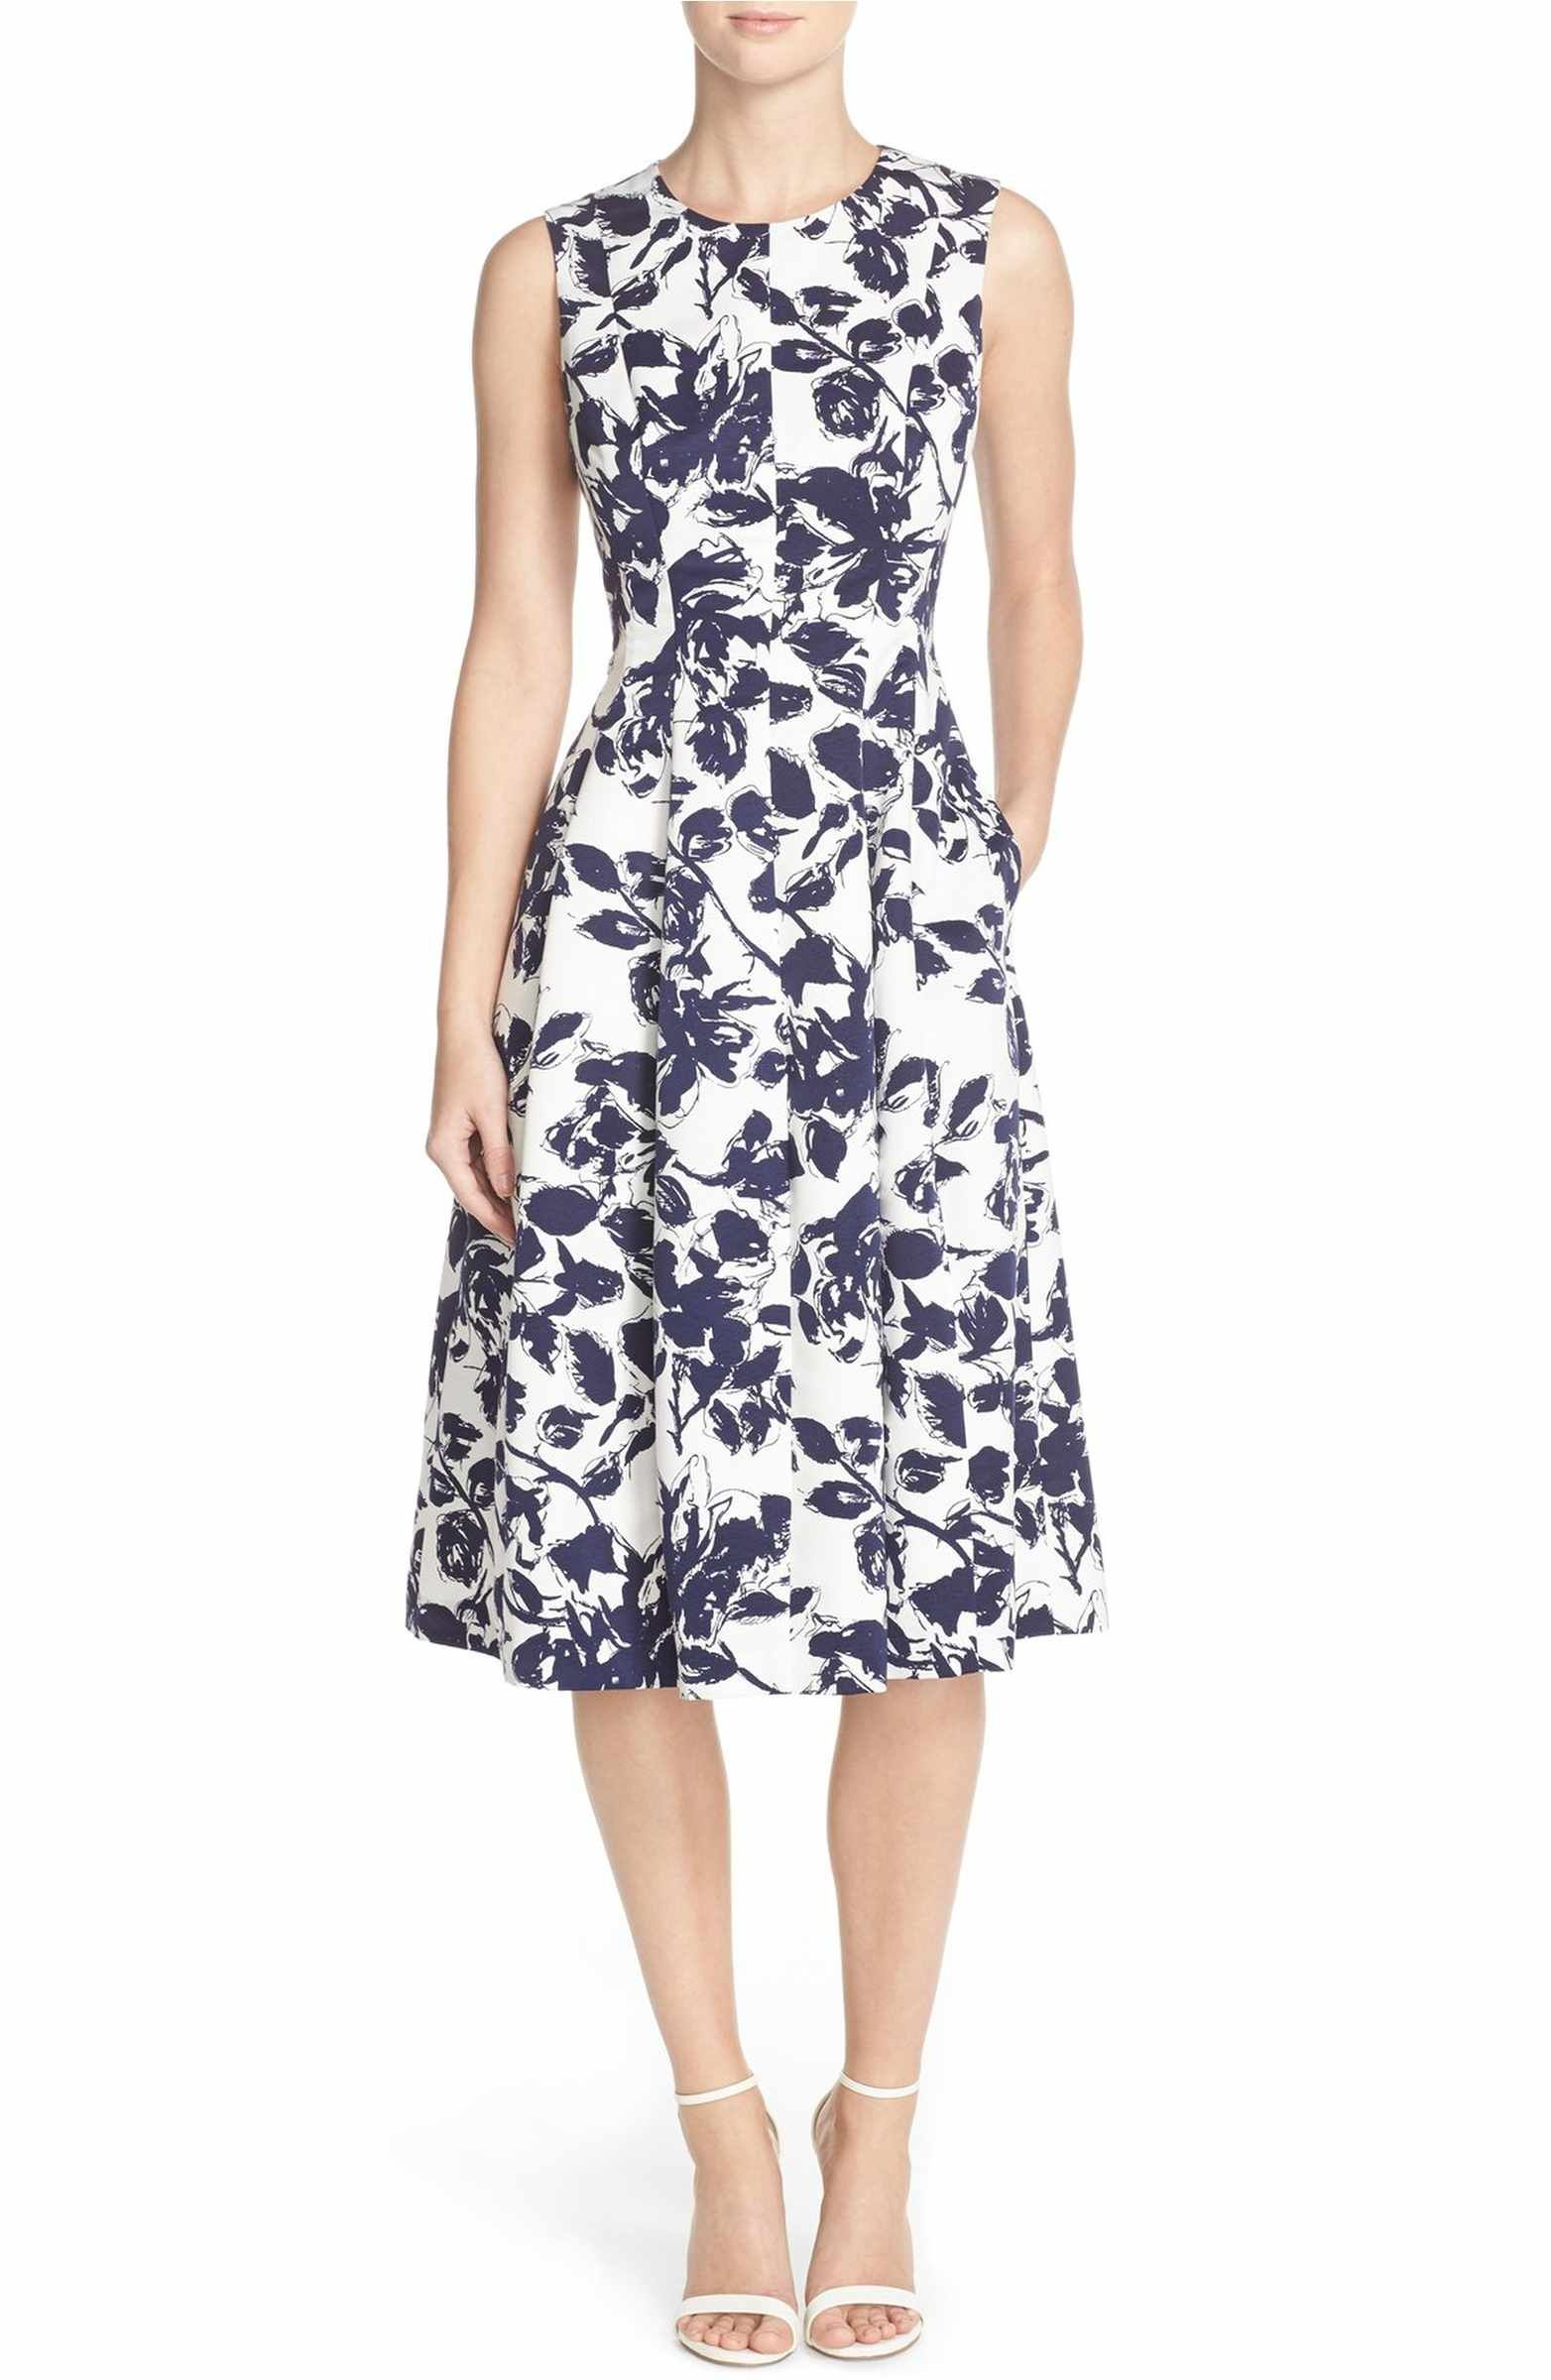 Floral print wedding guest dress  Floral Print Faille Midi Dress  Treat yoself Midi dresses and Floral